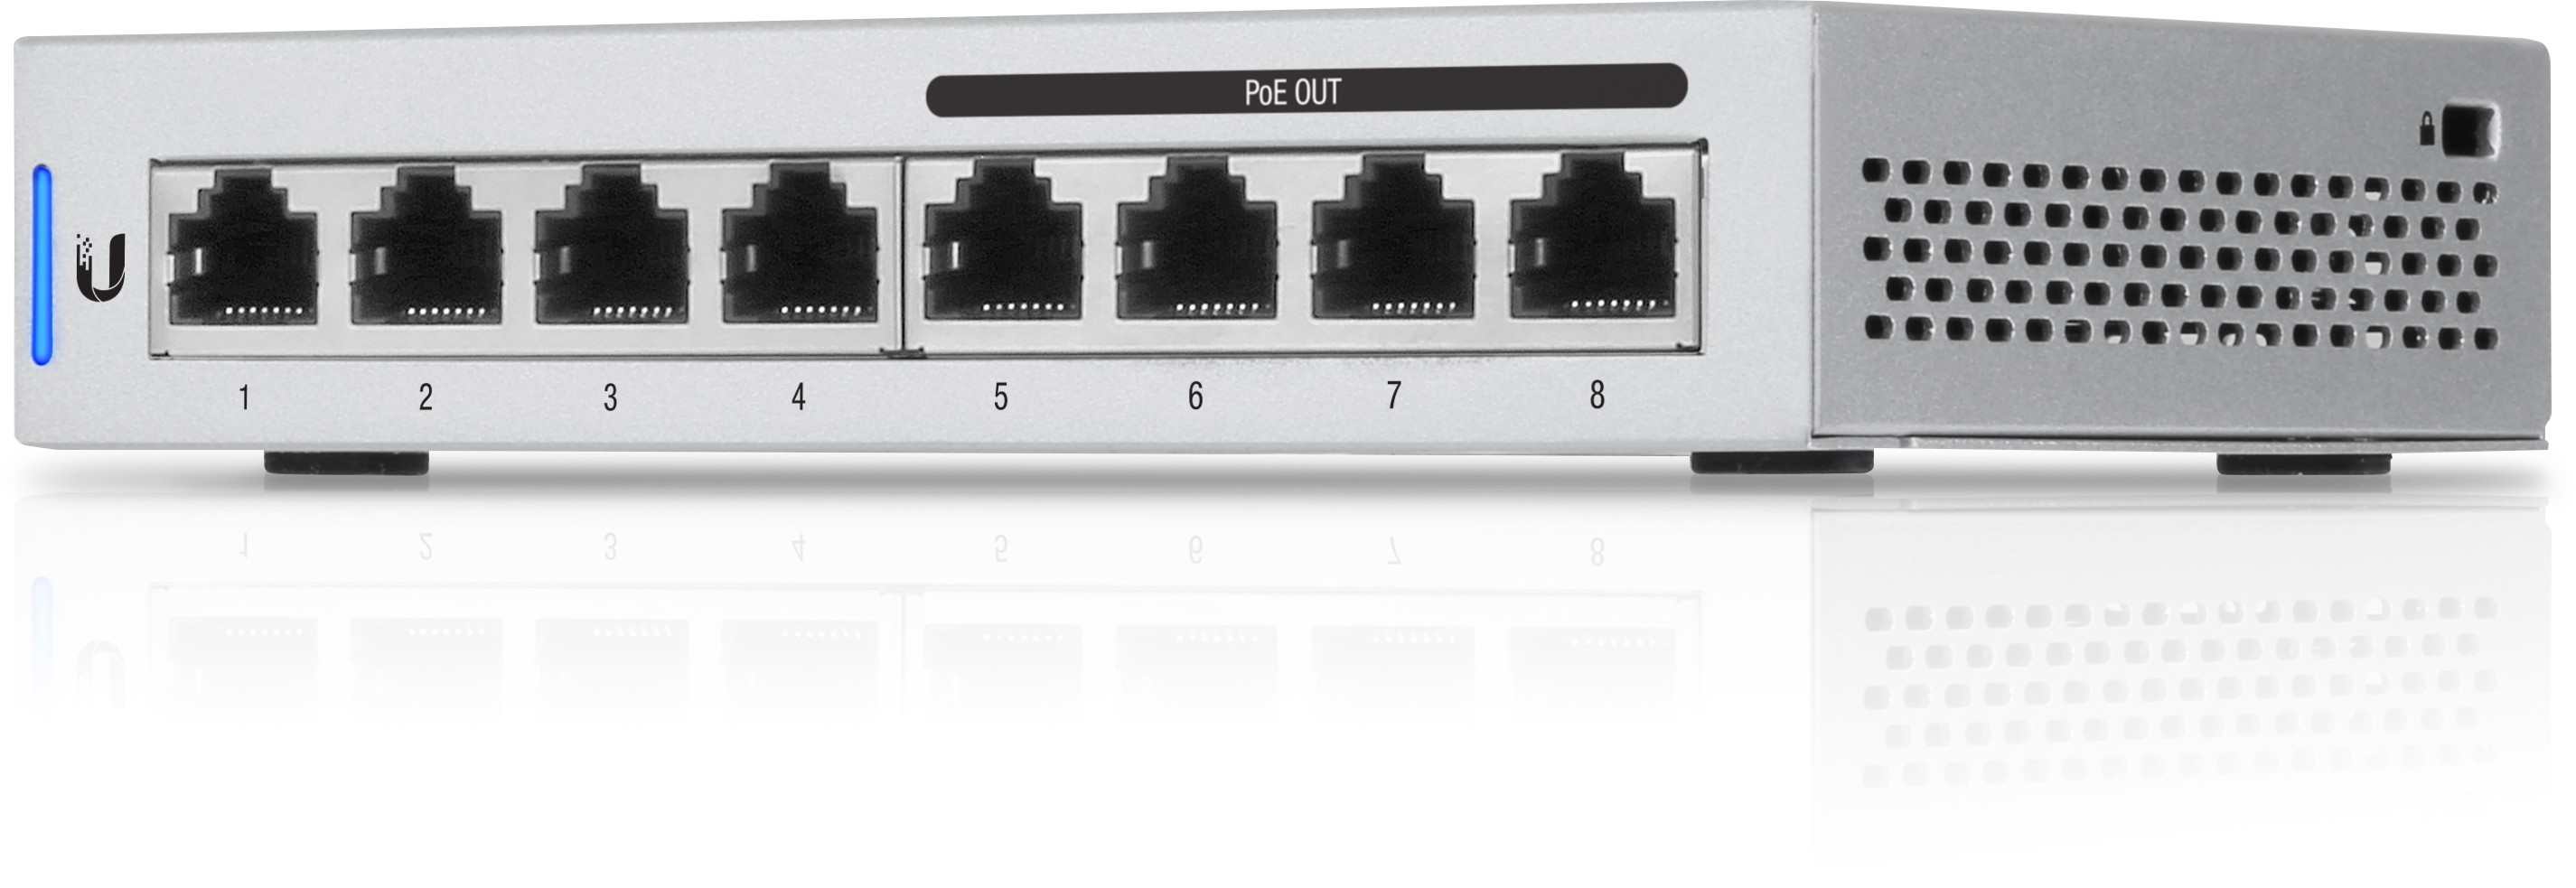 Switch Ubiquiti US-8-60W cu management cu PoE 8x1000Mbps-RJ45